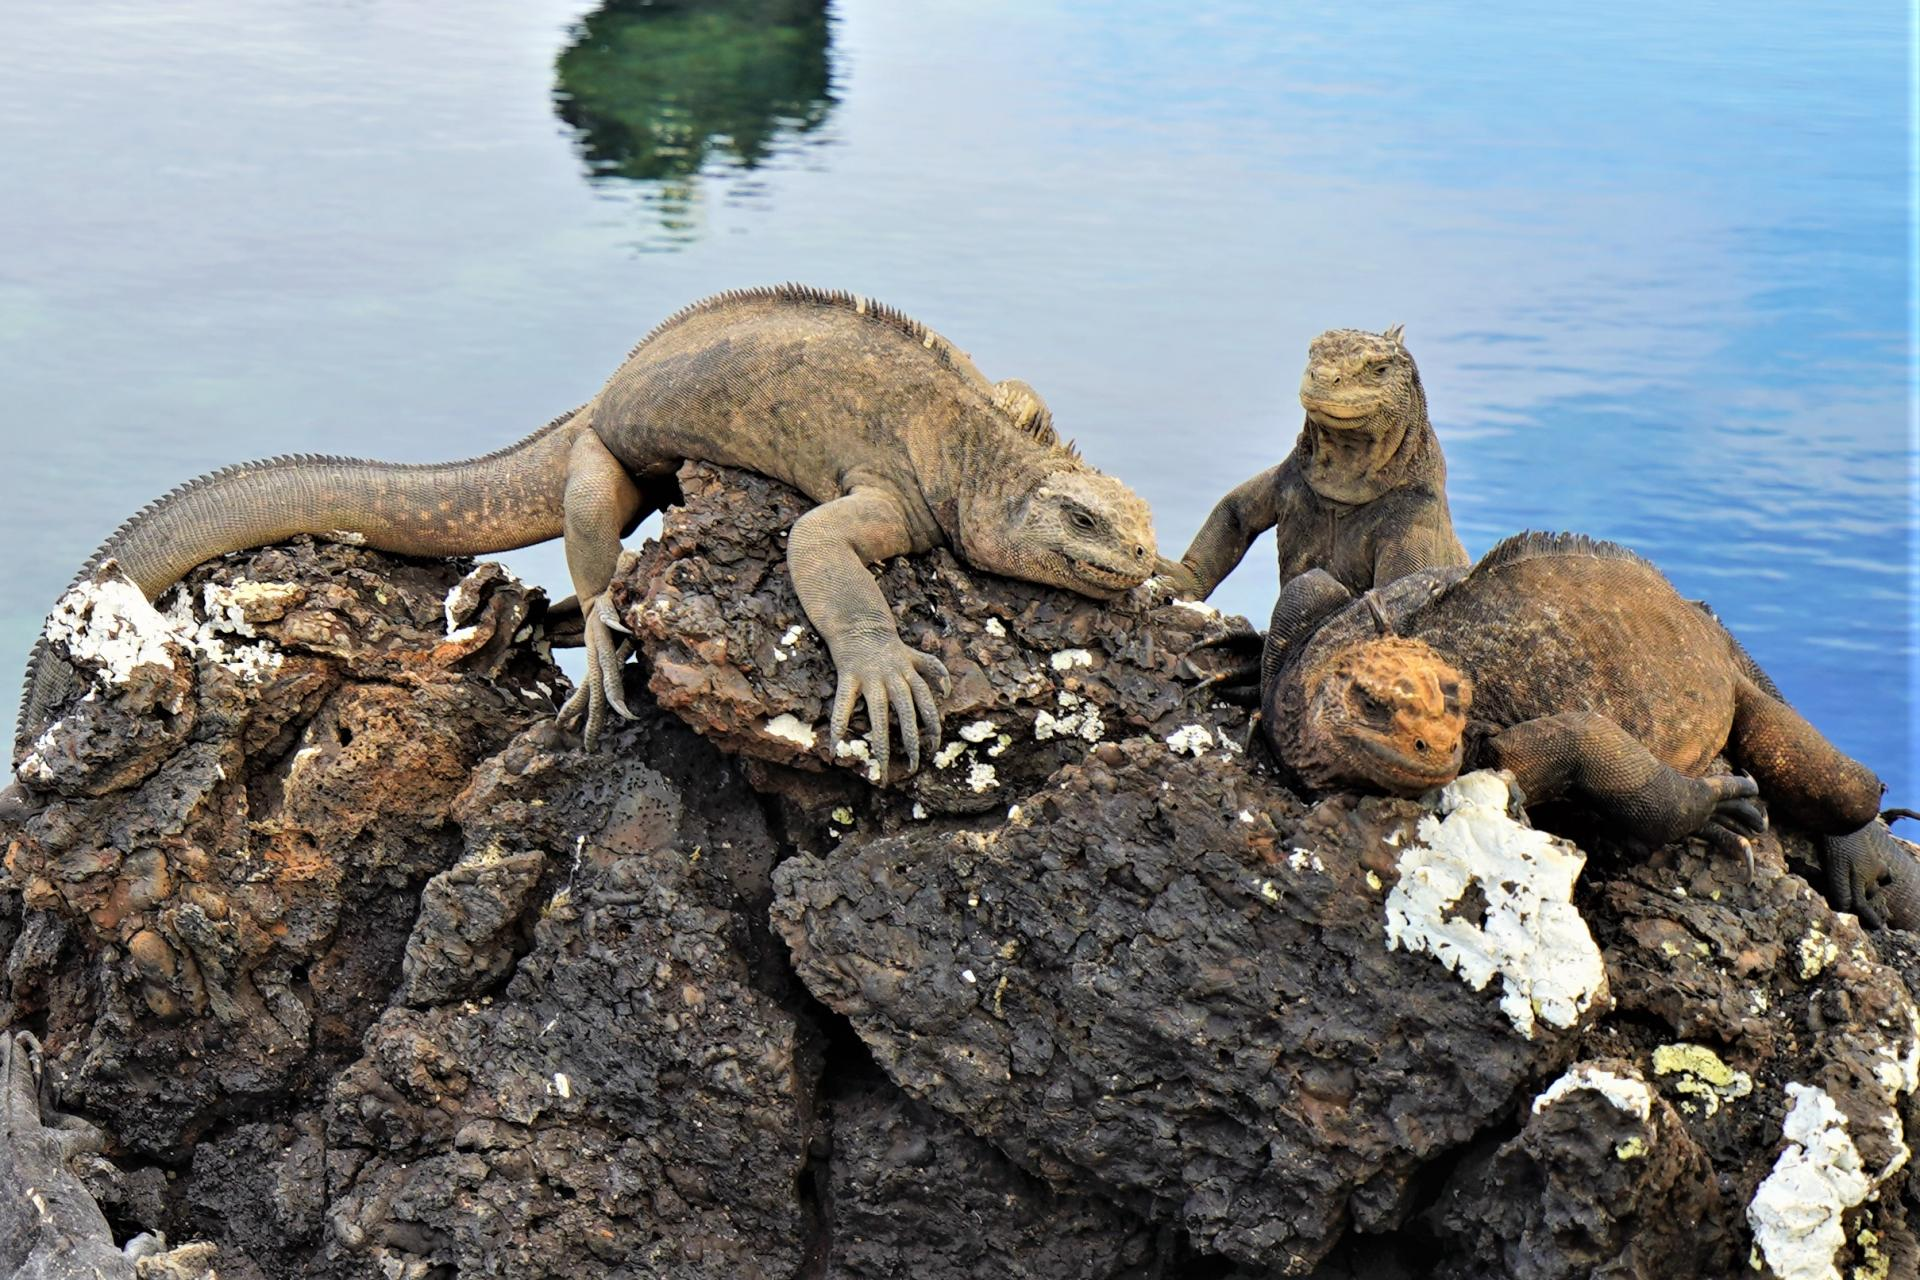 Galapagos iguanas on a rocky coastline